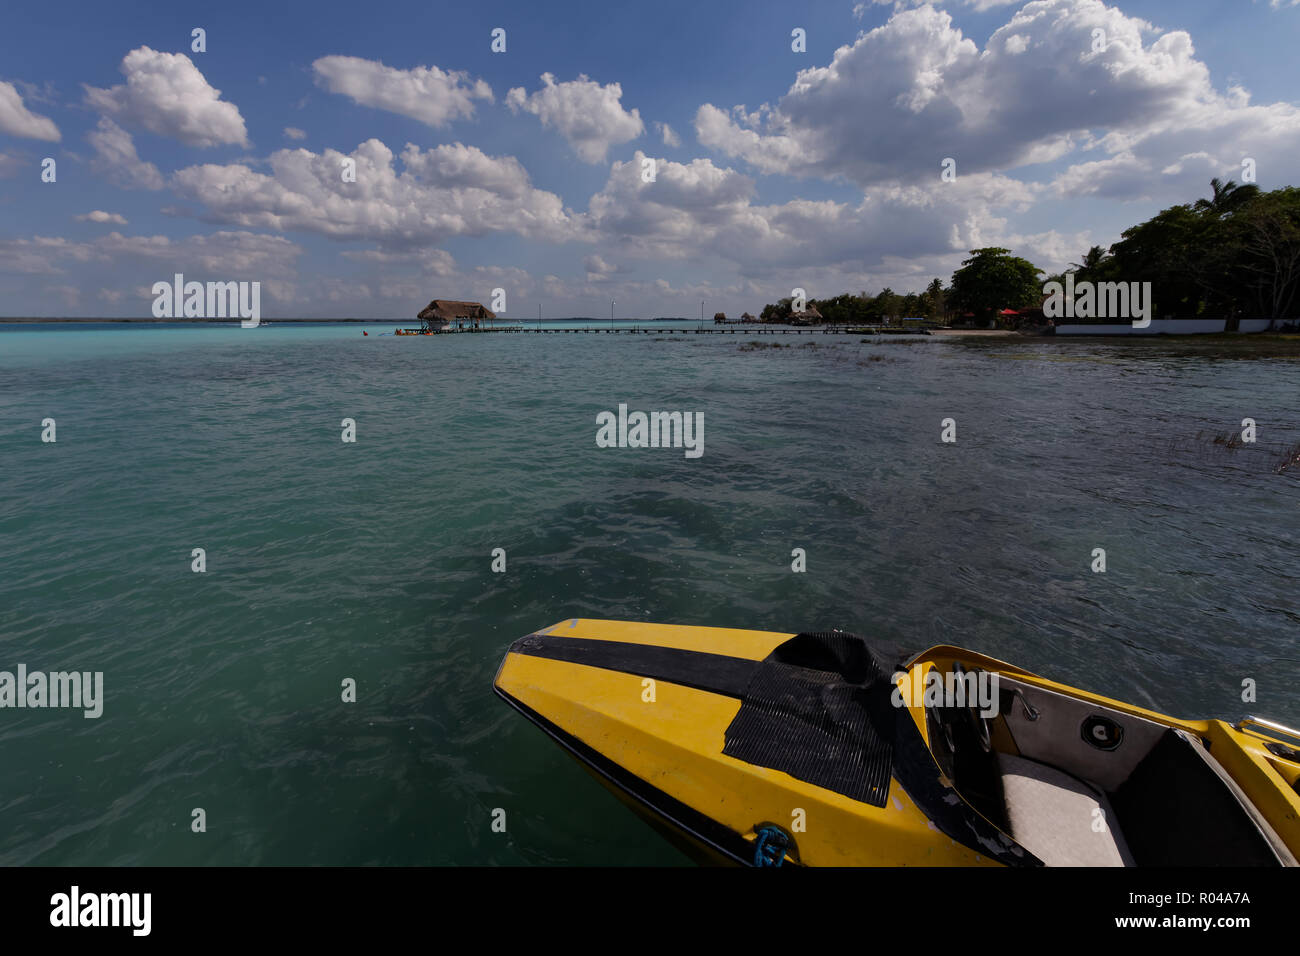 Laguna Bacalar - activities - Stock Image